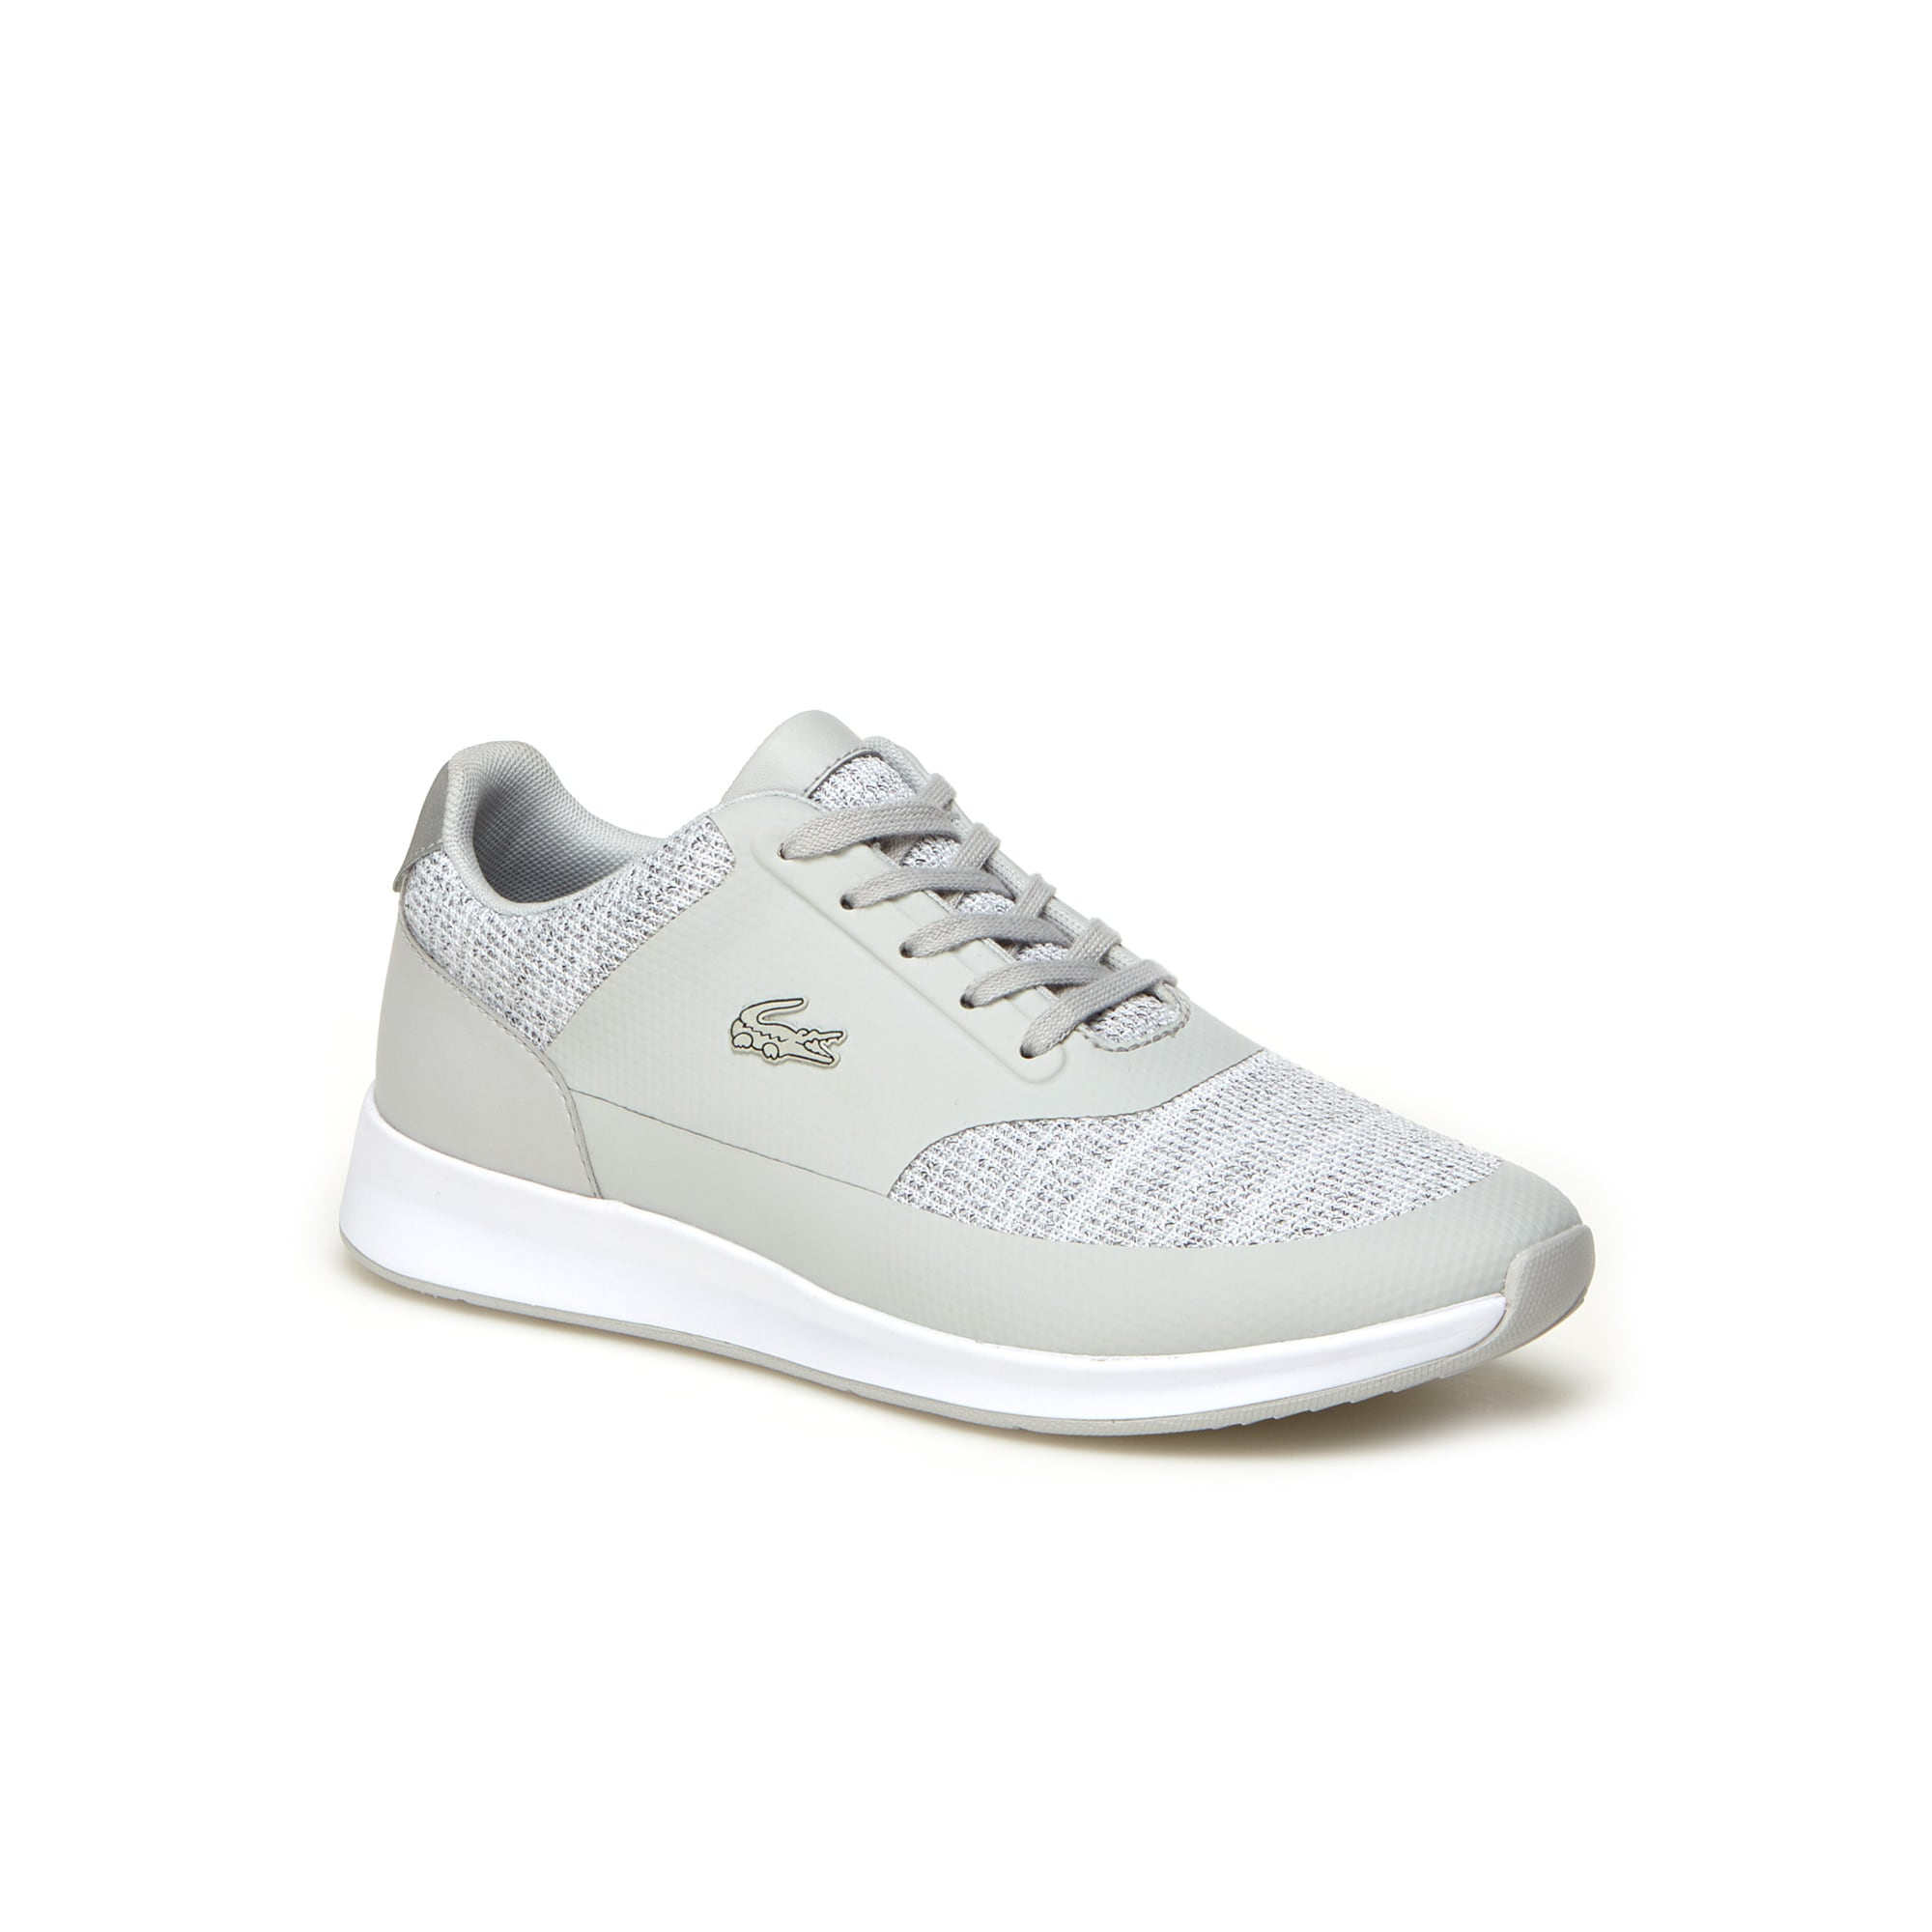 Women's Chaumont Lace Bi-Material Lurex Sneakers